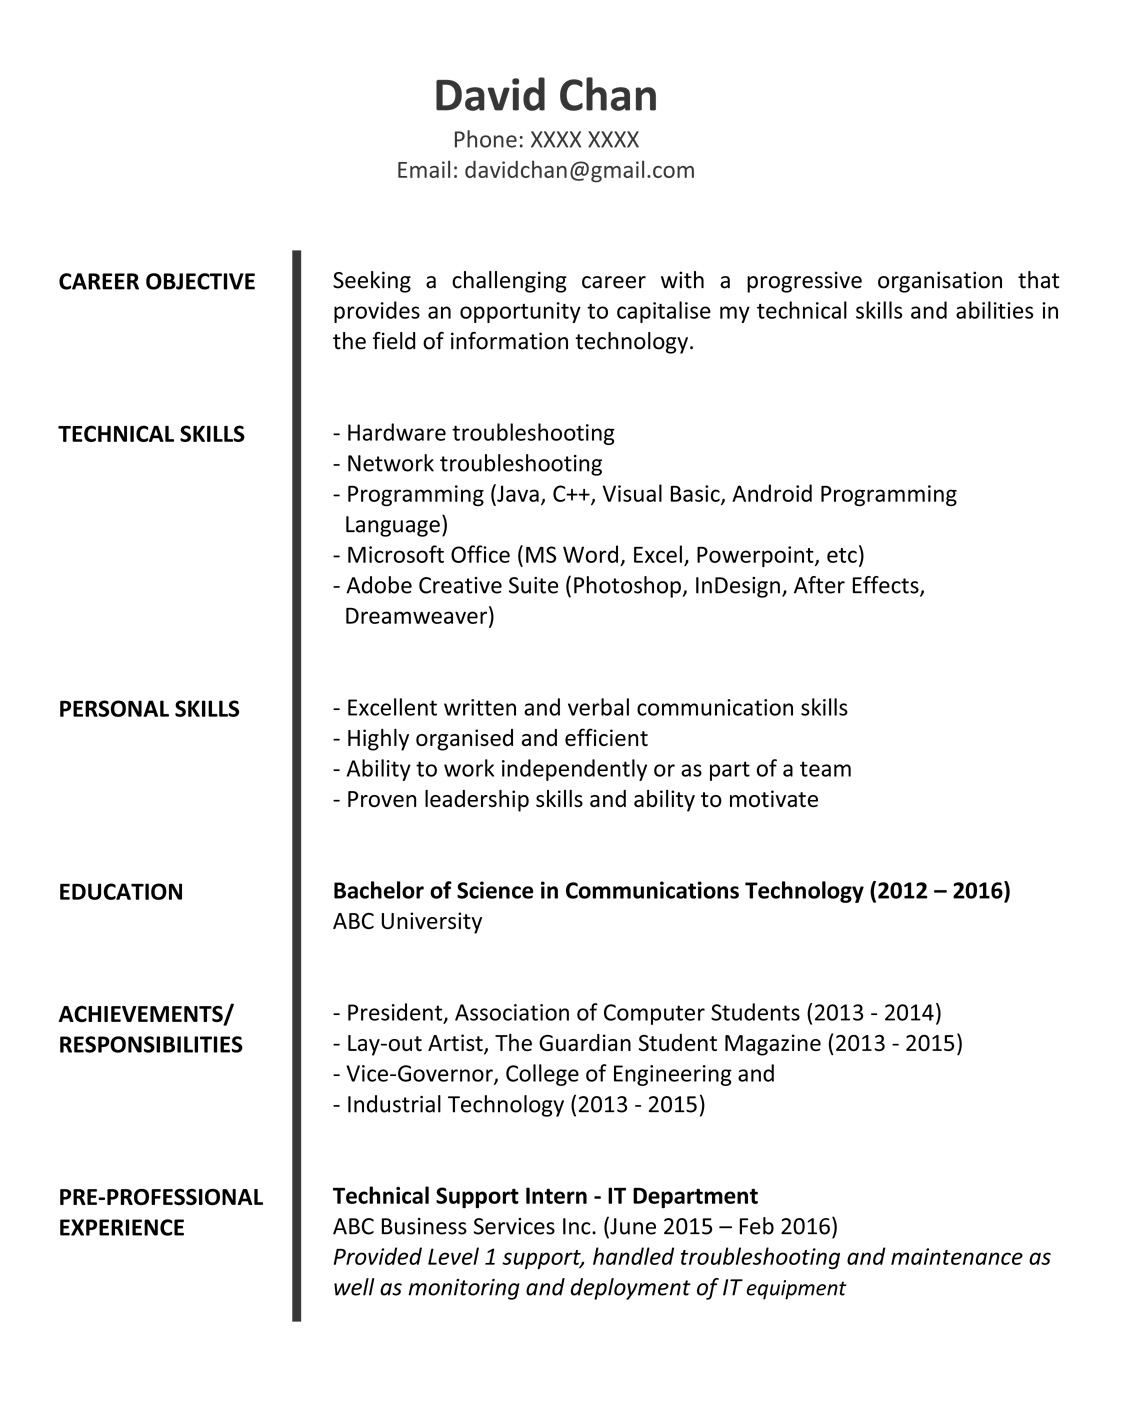 Contos Dunne Communications Application Letter Of Fresh Graduate